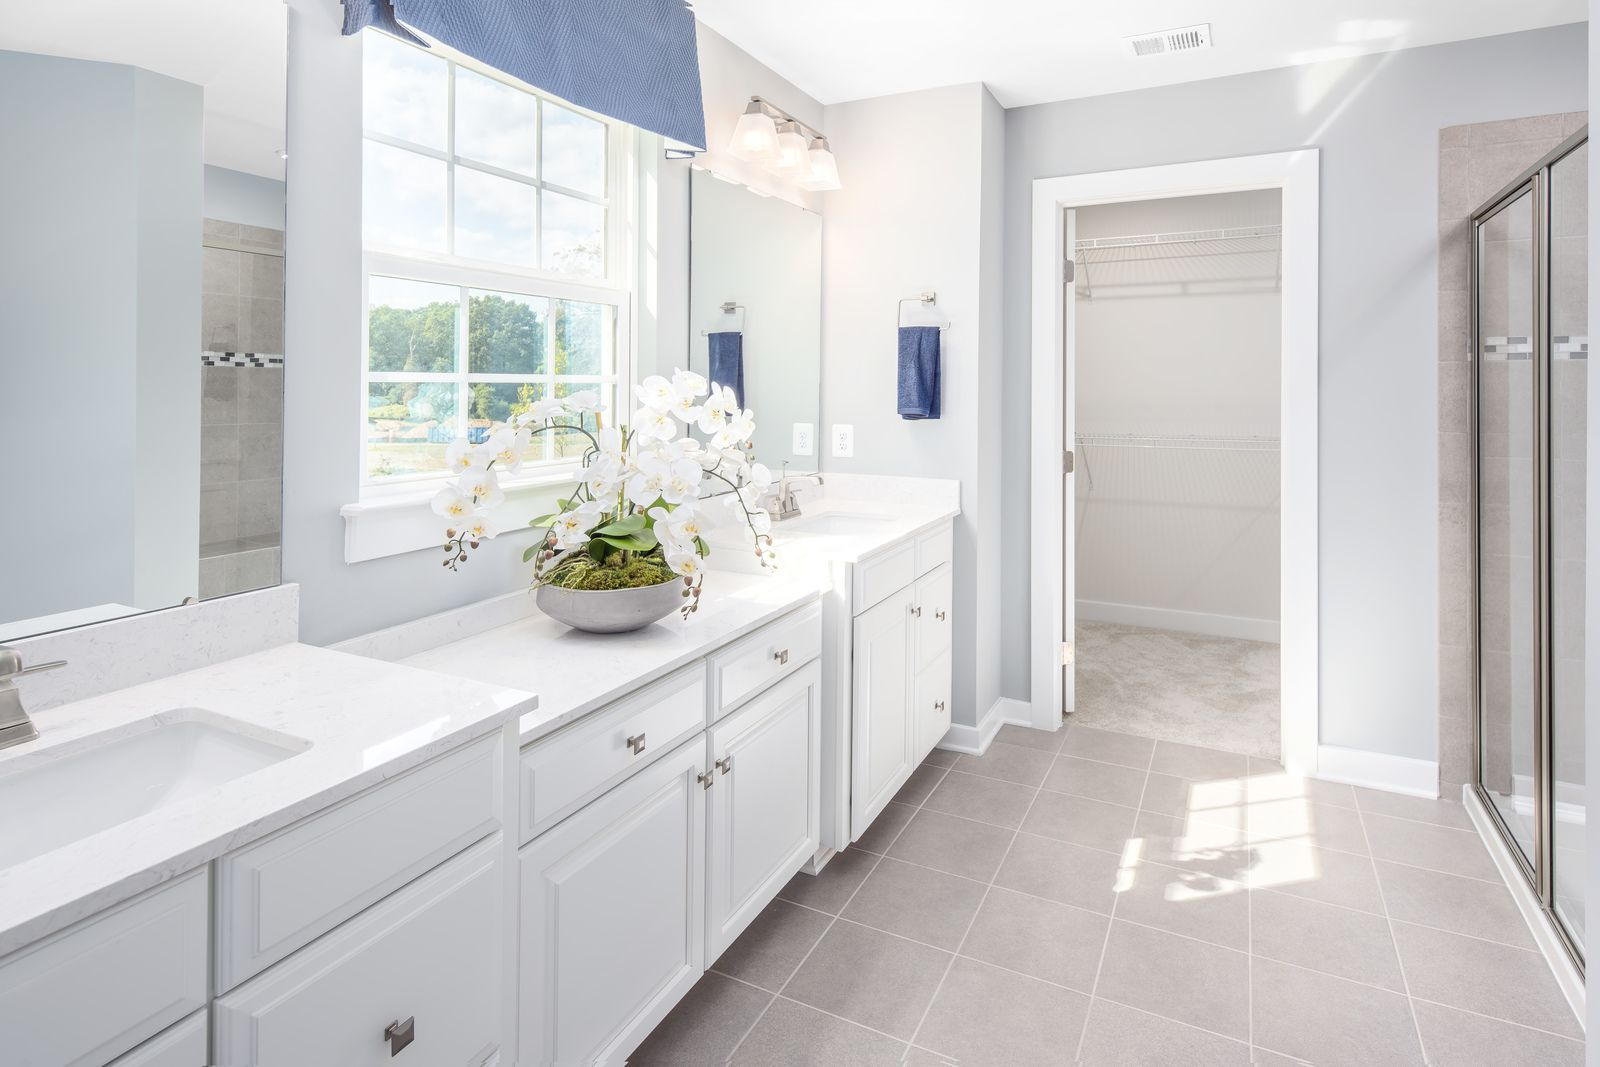 Bathroom featured in the Lehigh By Ryan Homes in Washington, VA